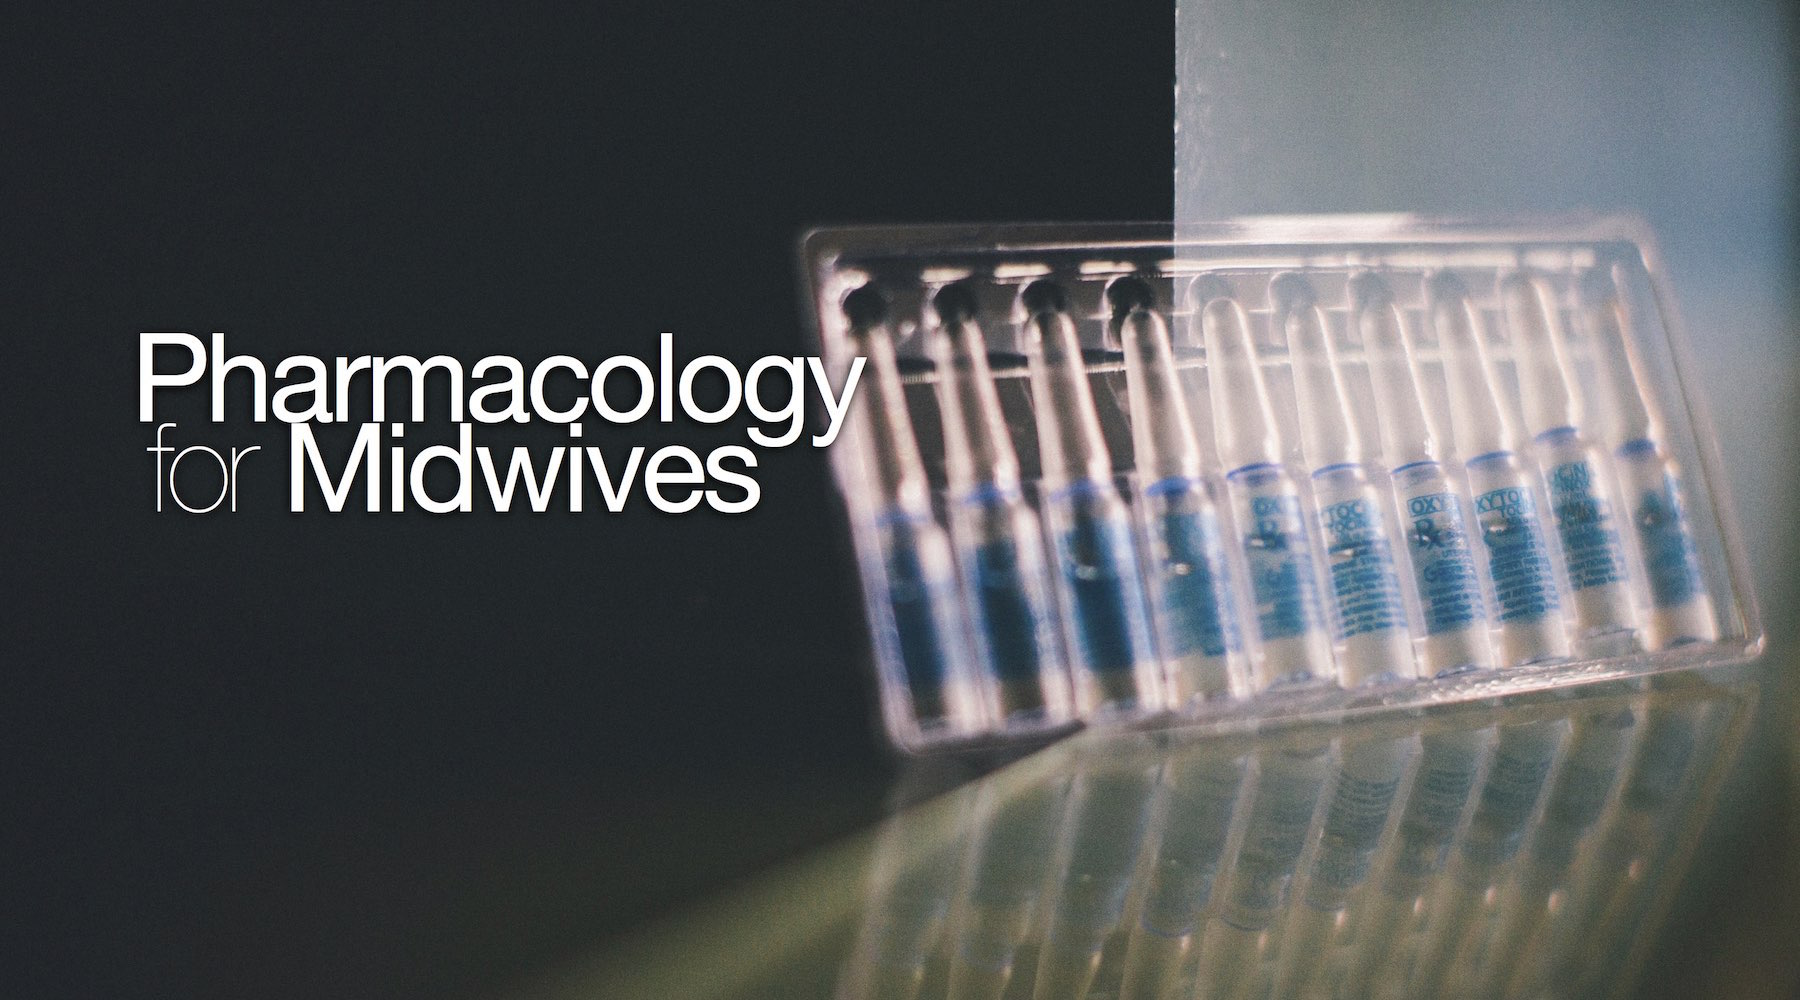 Pharmacology for Midwives cropped.jpg